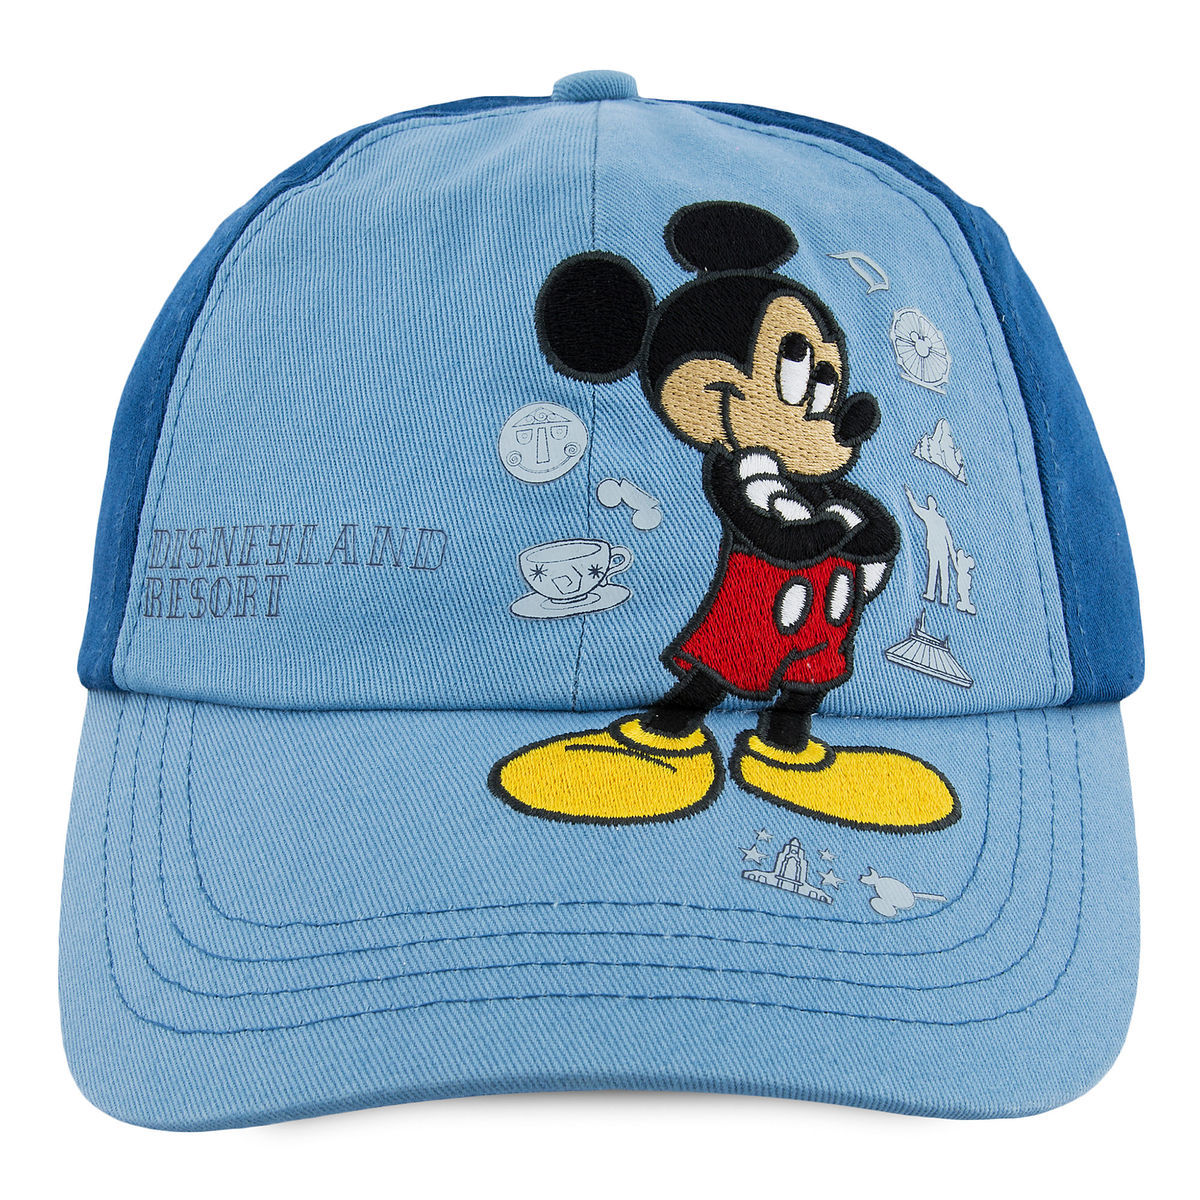 c0f31603db1 Product Image of Mickey Mouse Baseball Cap for Kids - Disneyland 2018   1